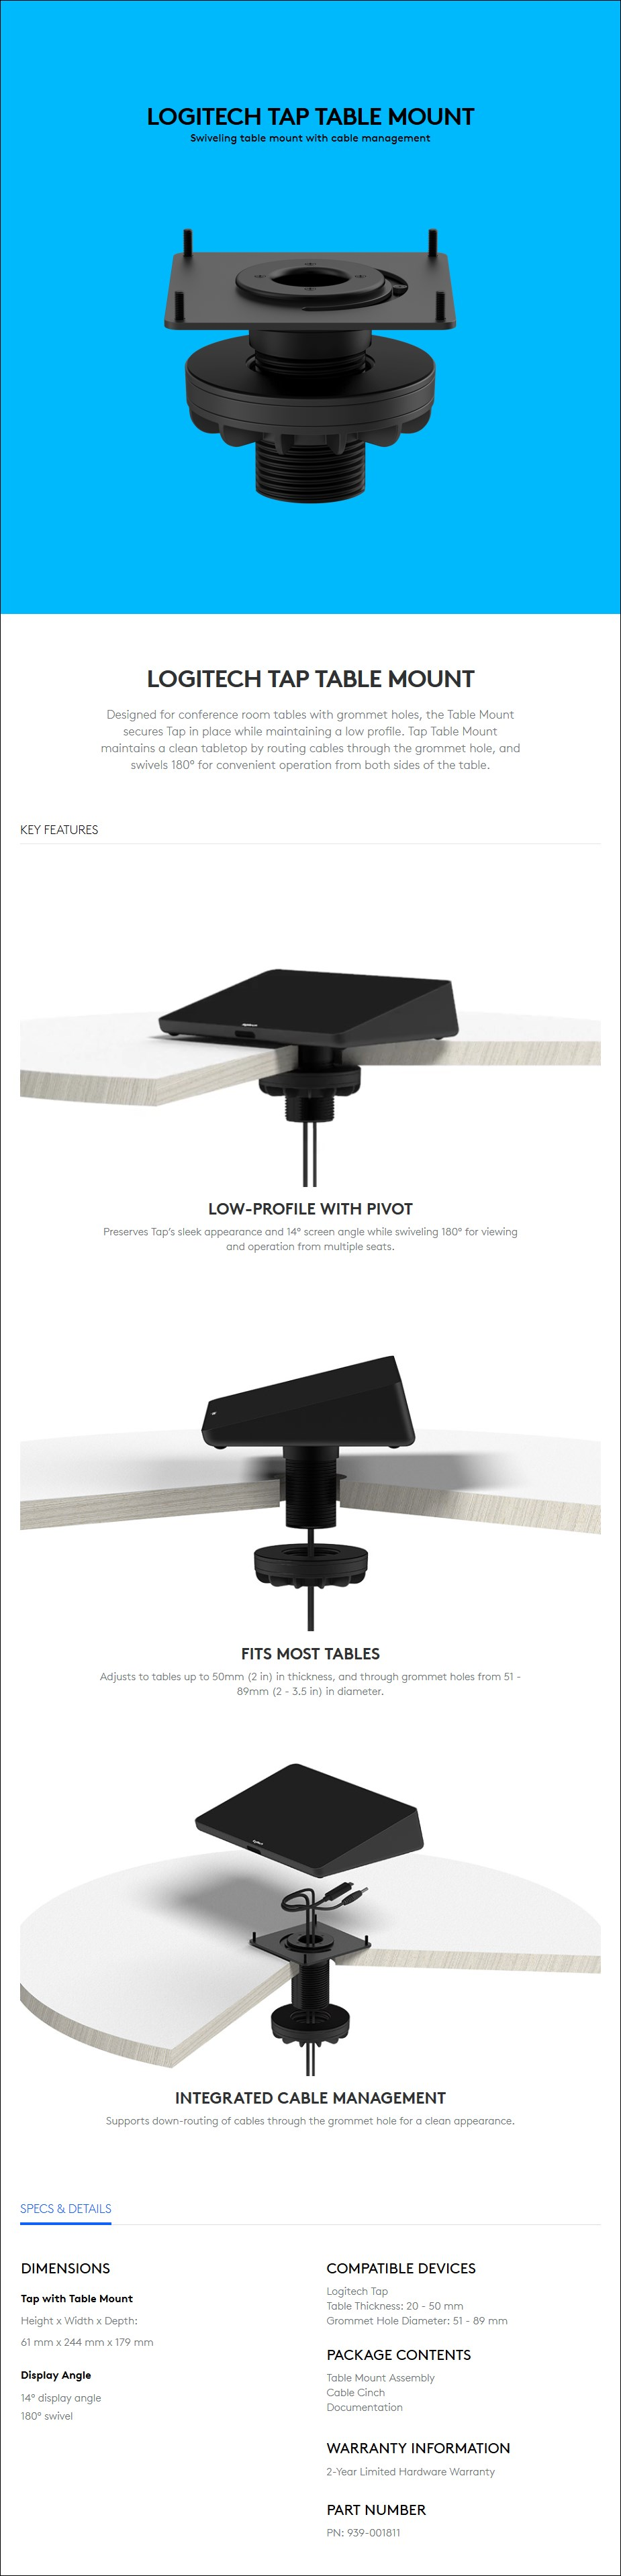 Logitech Tap Table Mount - Overview 1